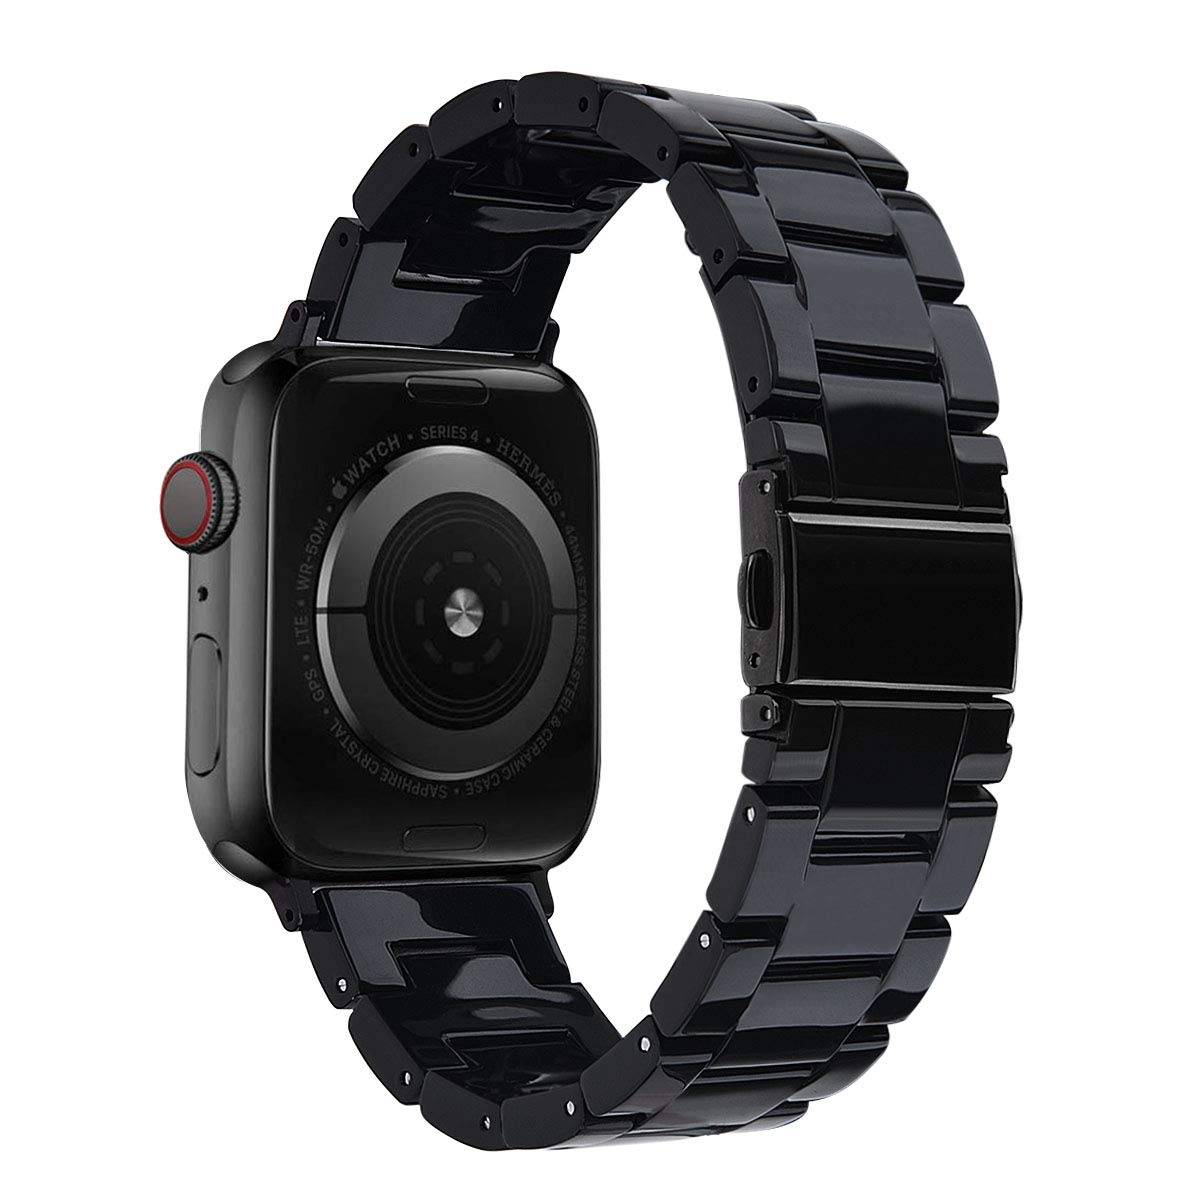 V-MORO Resin Strap Compatible with Apple Watch Band 38mm 40mm iWatch Series 5/4/3/2/1 with Stainless Steel Buckle Black, Apple Watch Replacement BraceletWristband Strap Women Men (Black-Tone)